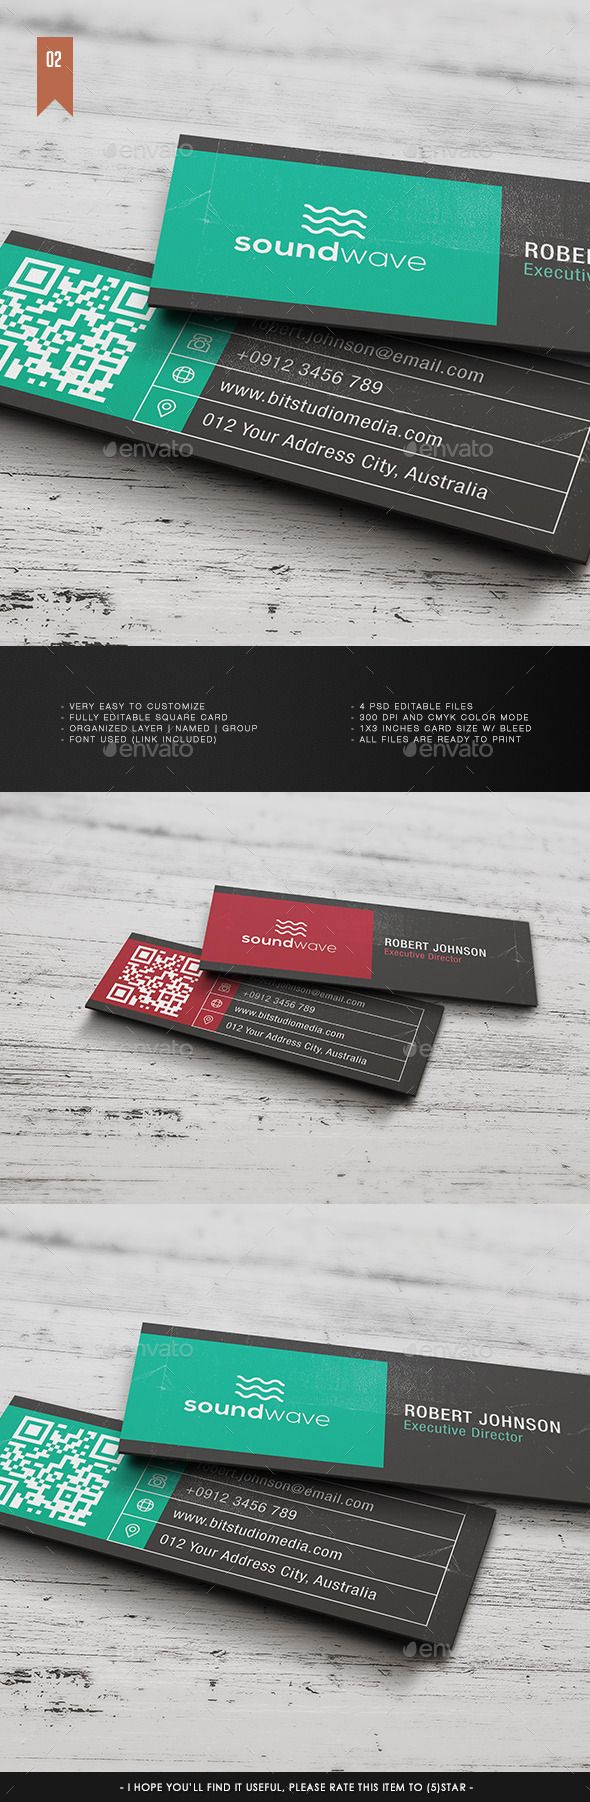 7 best square business cards coasters images on pinterest square micro business card v002 colourmoves